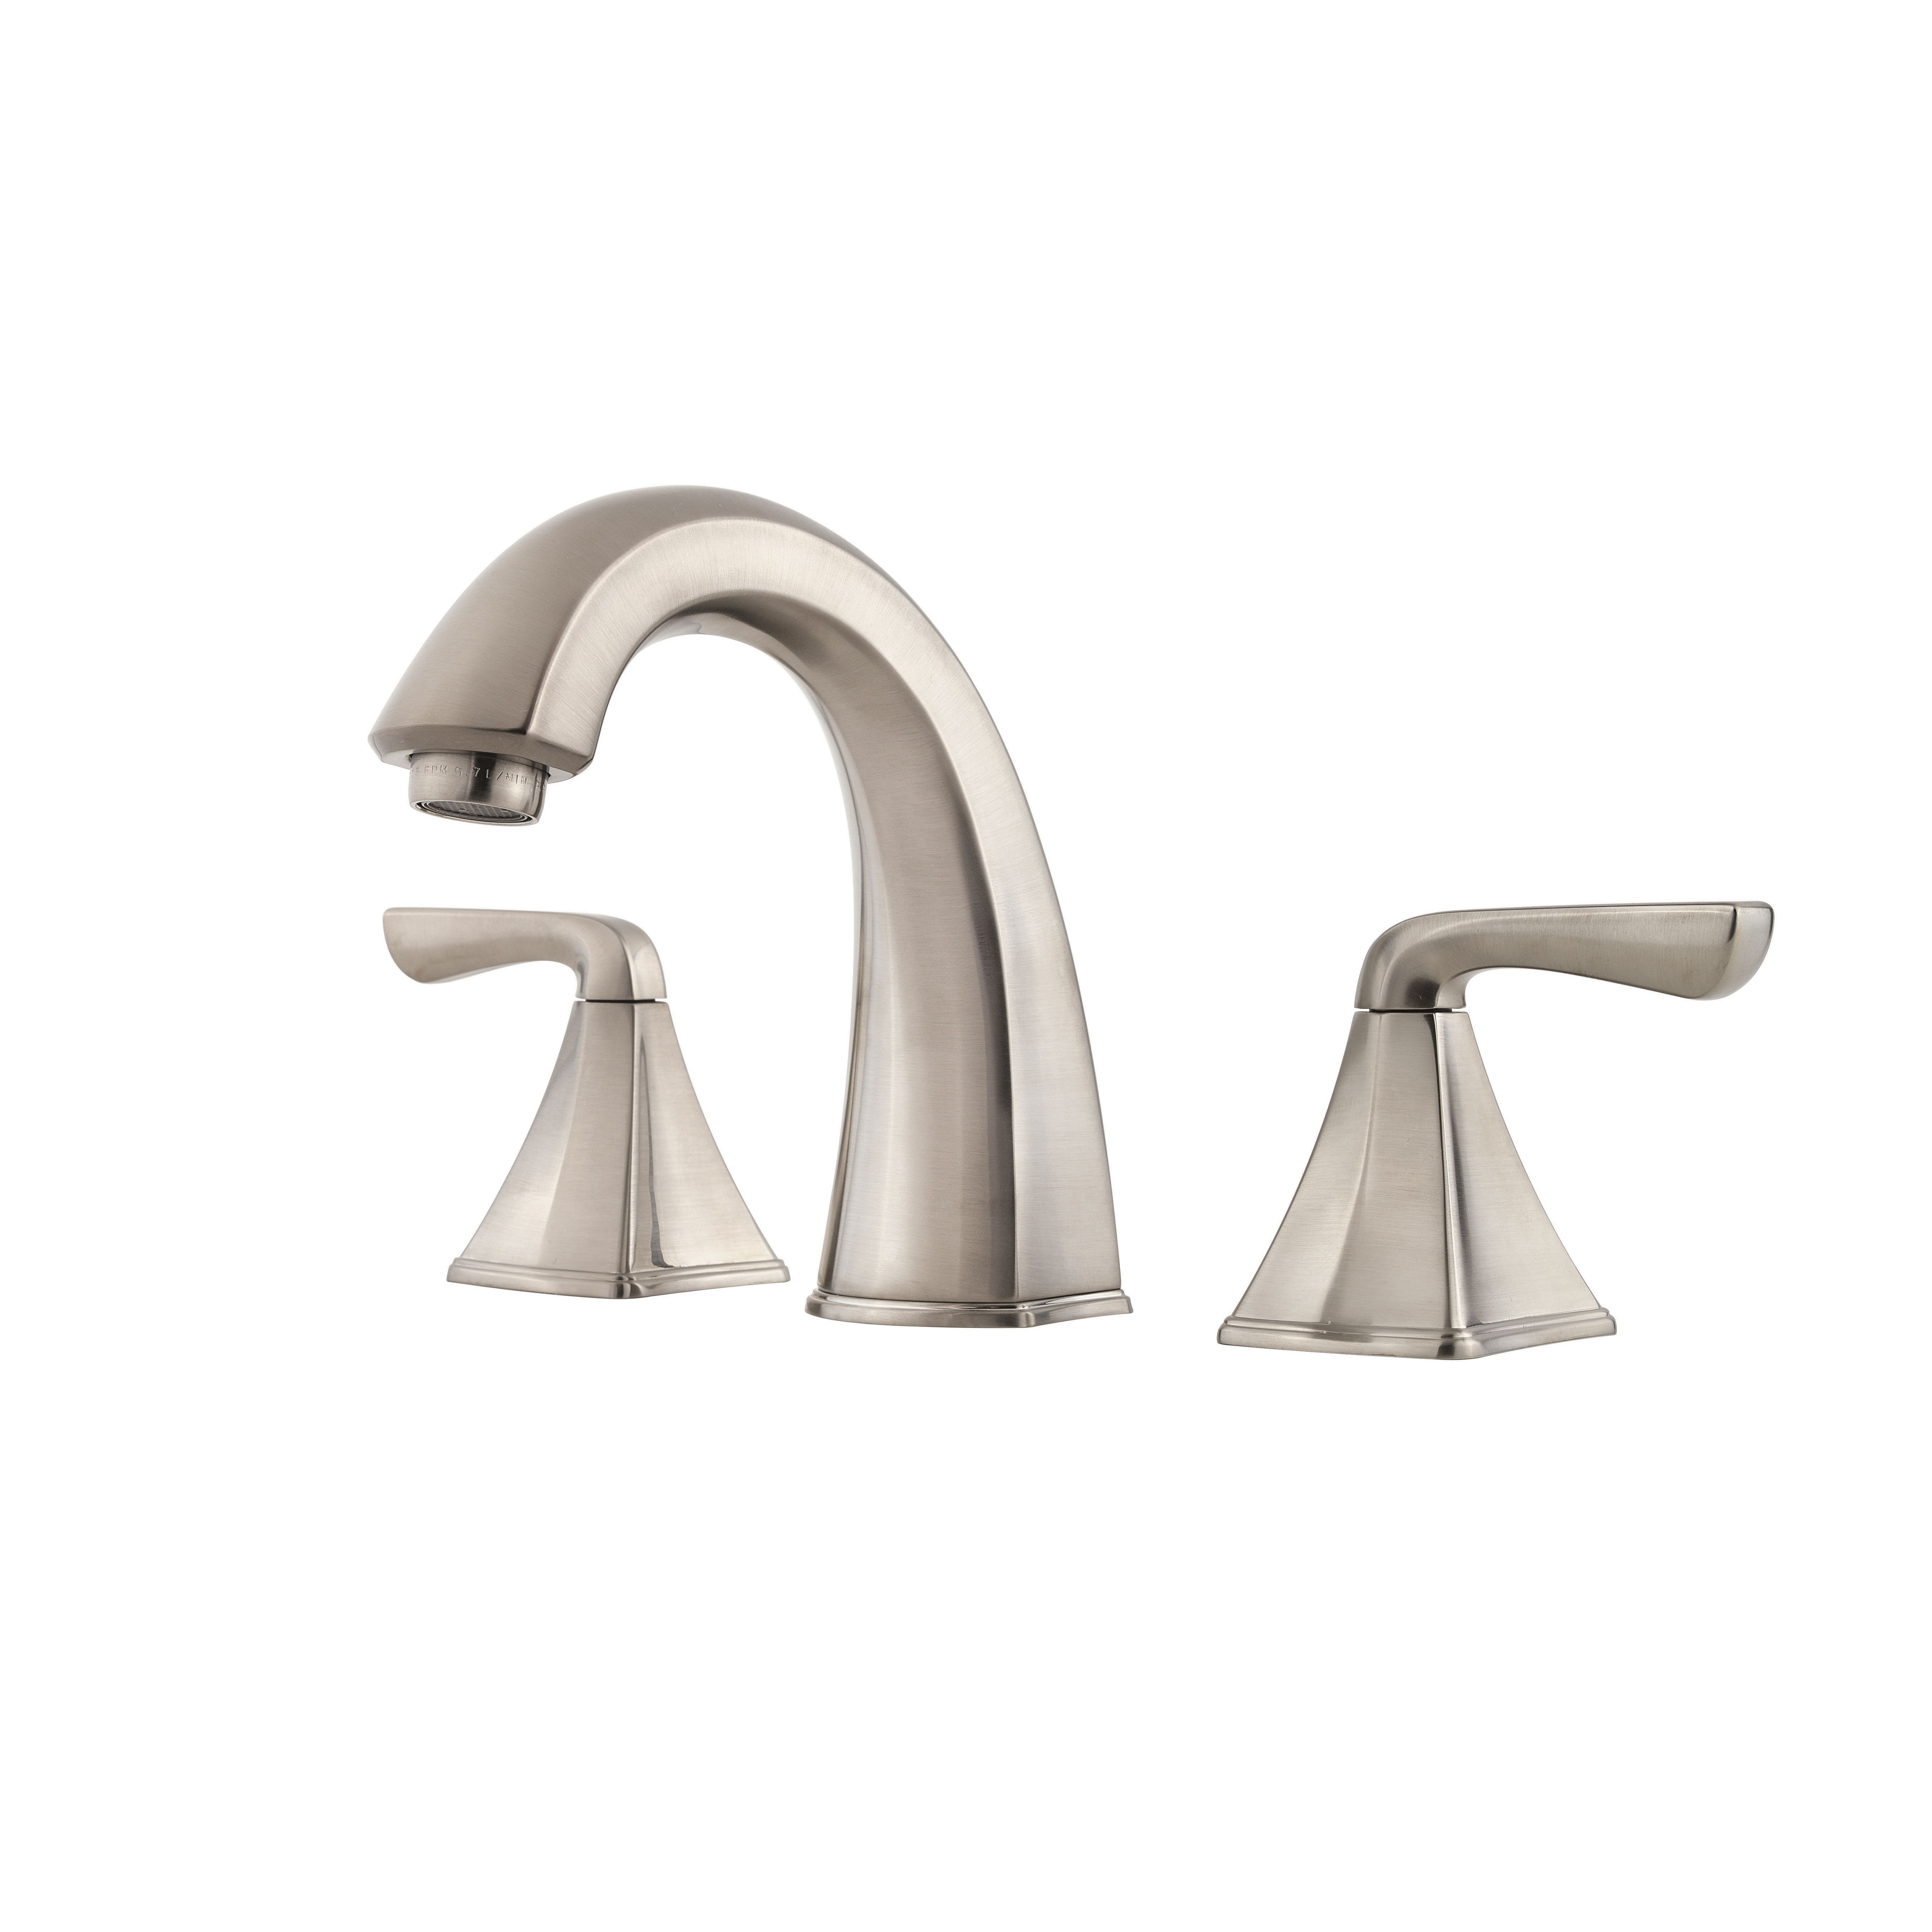 Pfister Faucets Selia Two Handle 8 Inch Centerset Bathroom Faucet